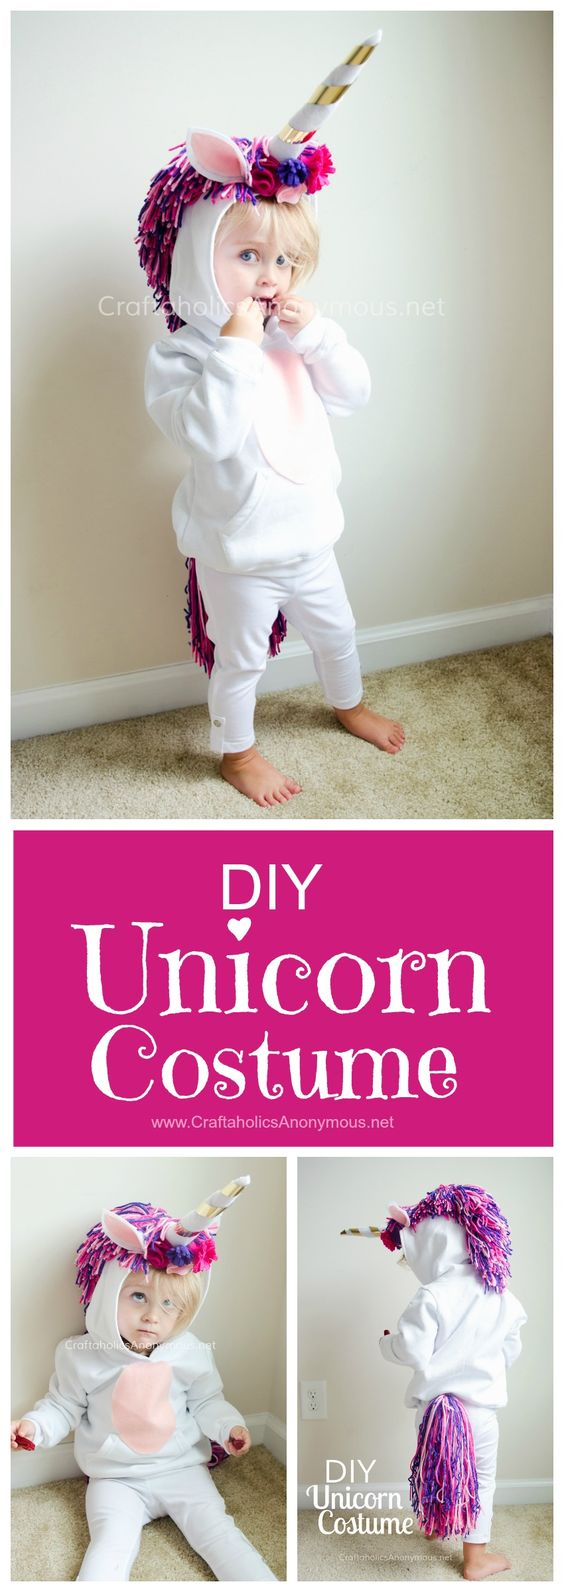 Unicorn Costume DIY Tutorial :: Such a cute handmade Halloween costume idea for kids!: